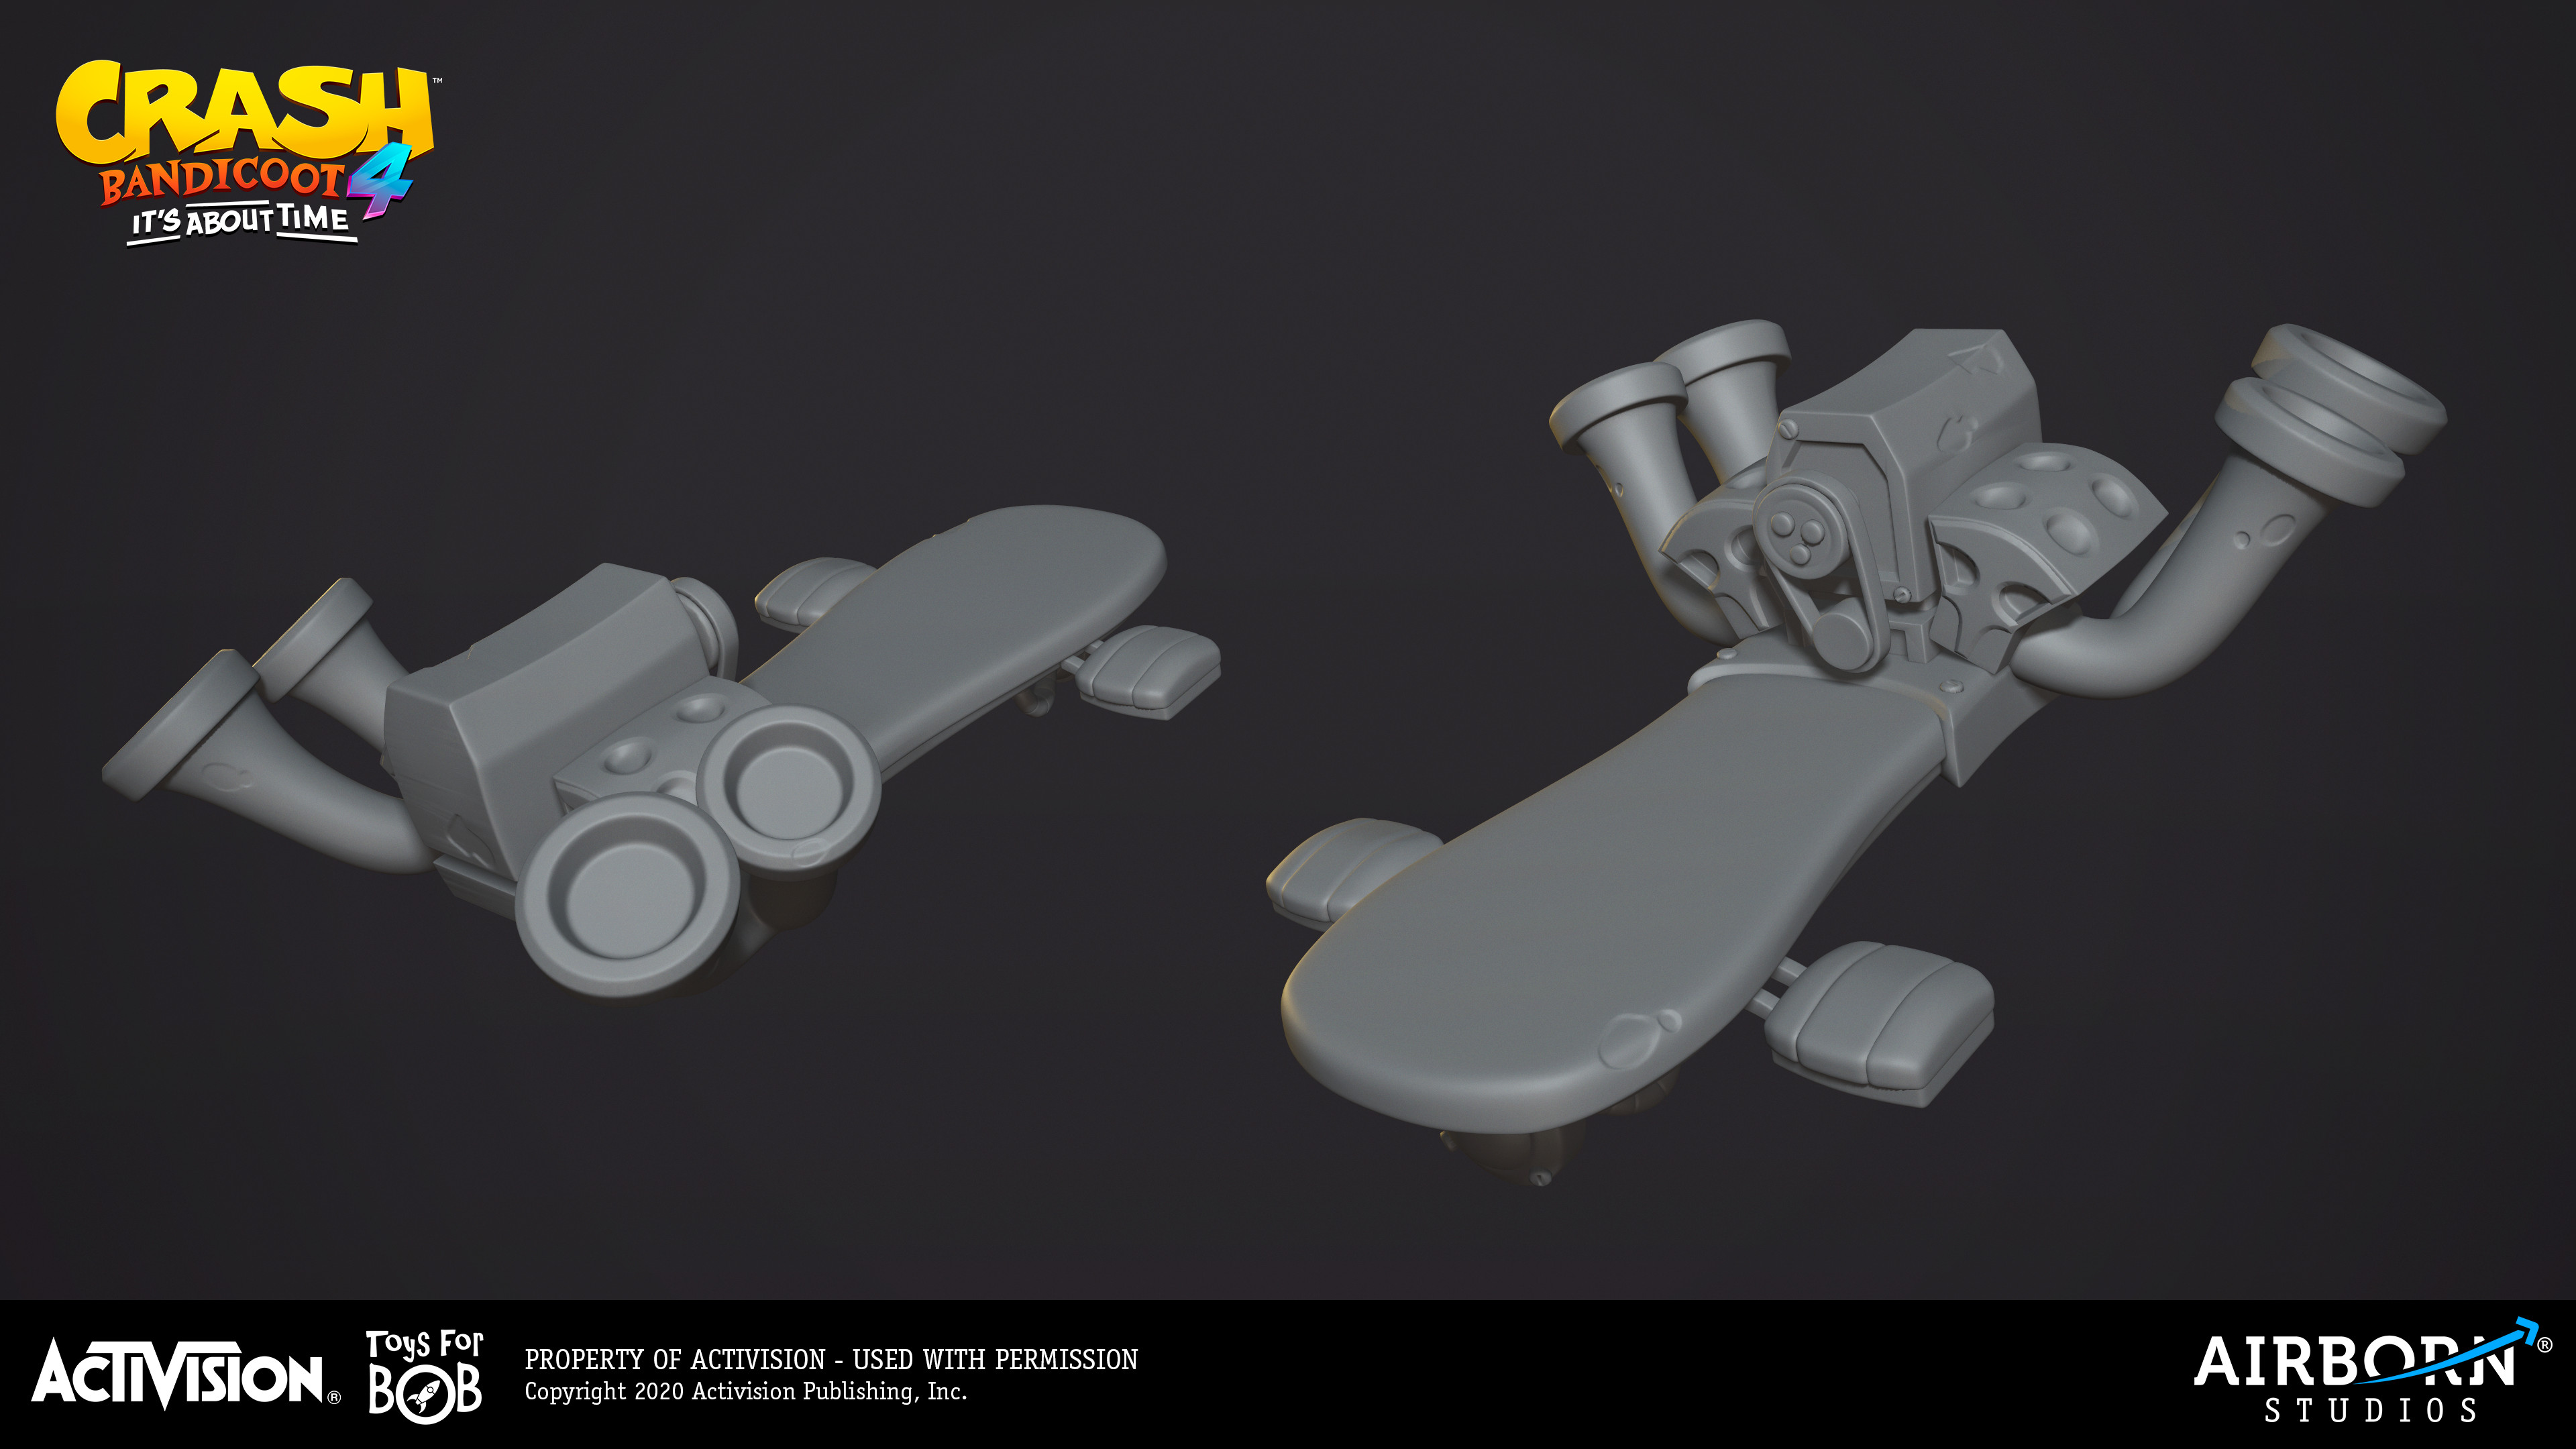 Classic Swamp Hoverboard high-poly done by Florentine Postema. Concept provided by Toys for Bob.